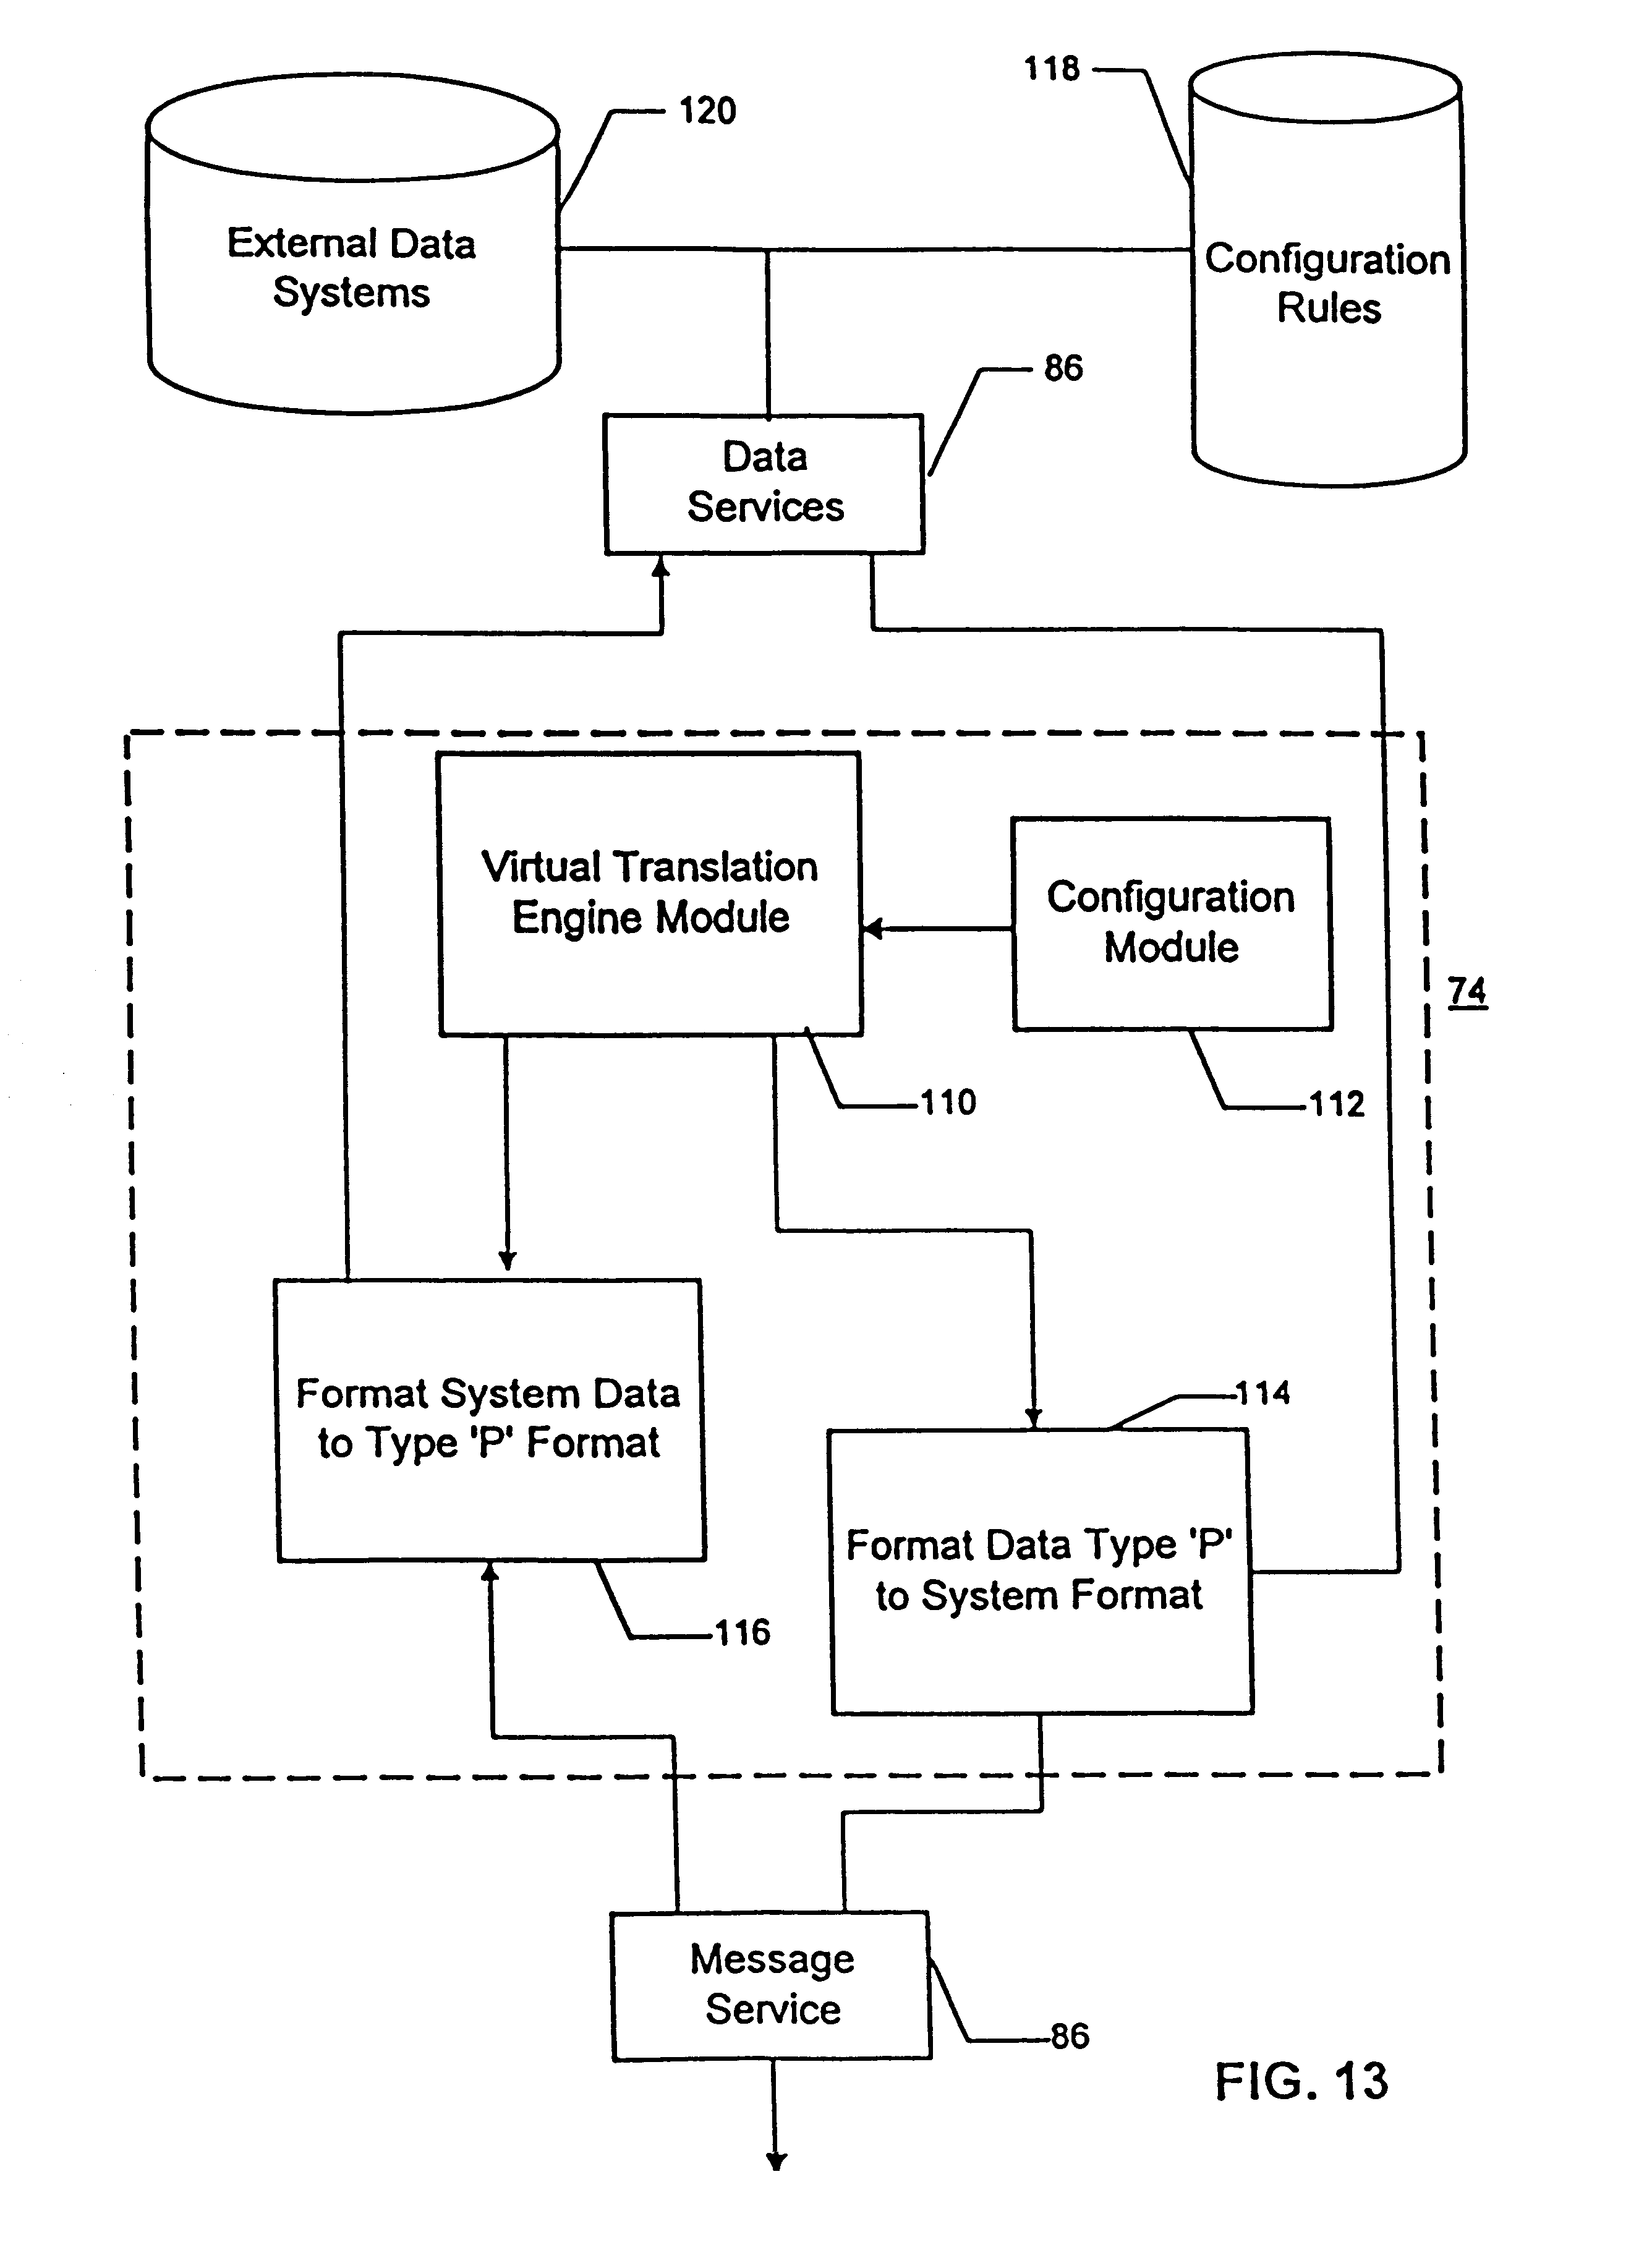 processing and data-storage functions of client application